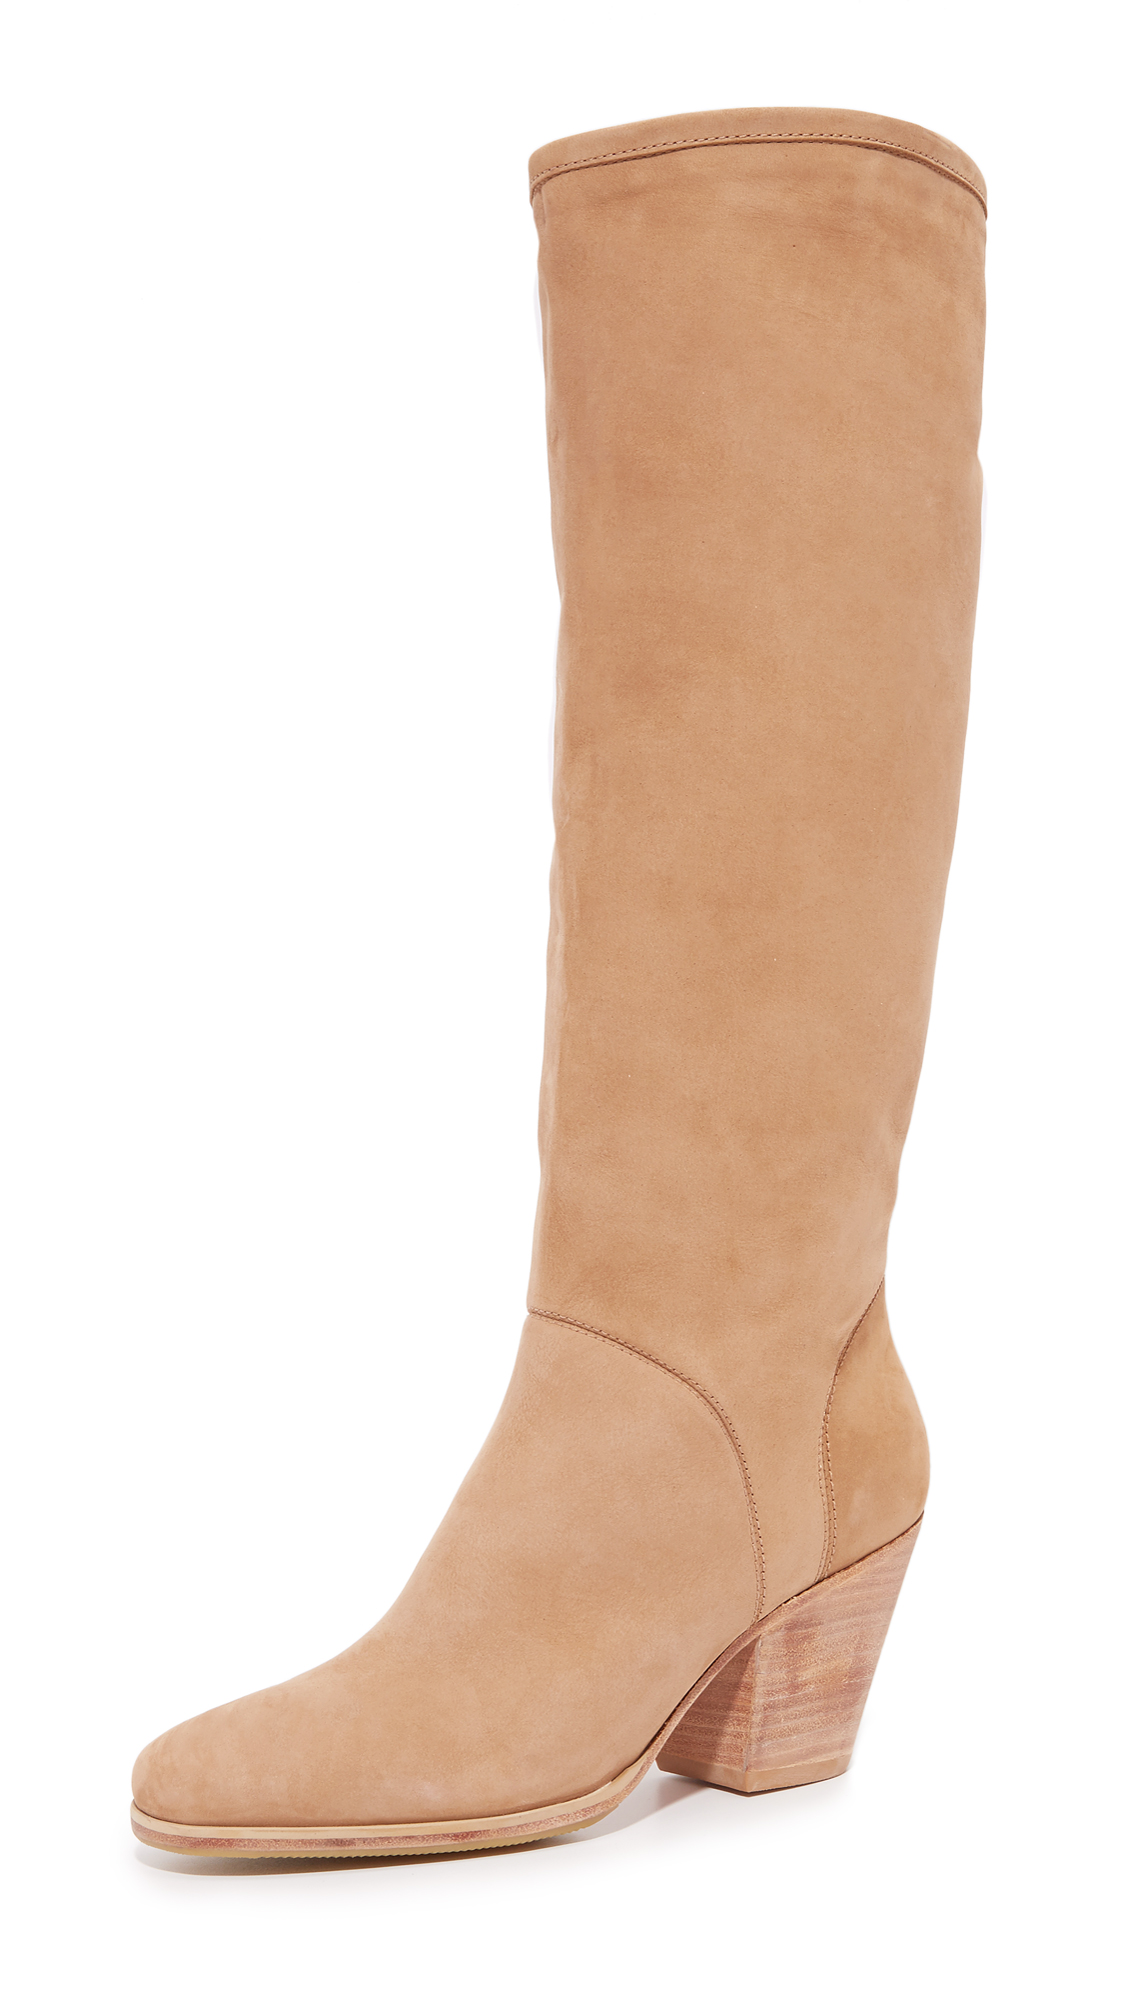 Rachel Comey Carrier Boots - Natural